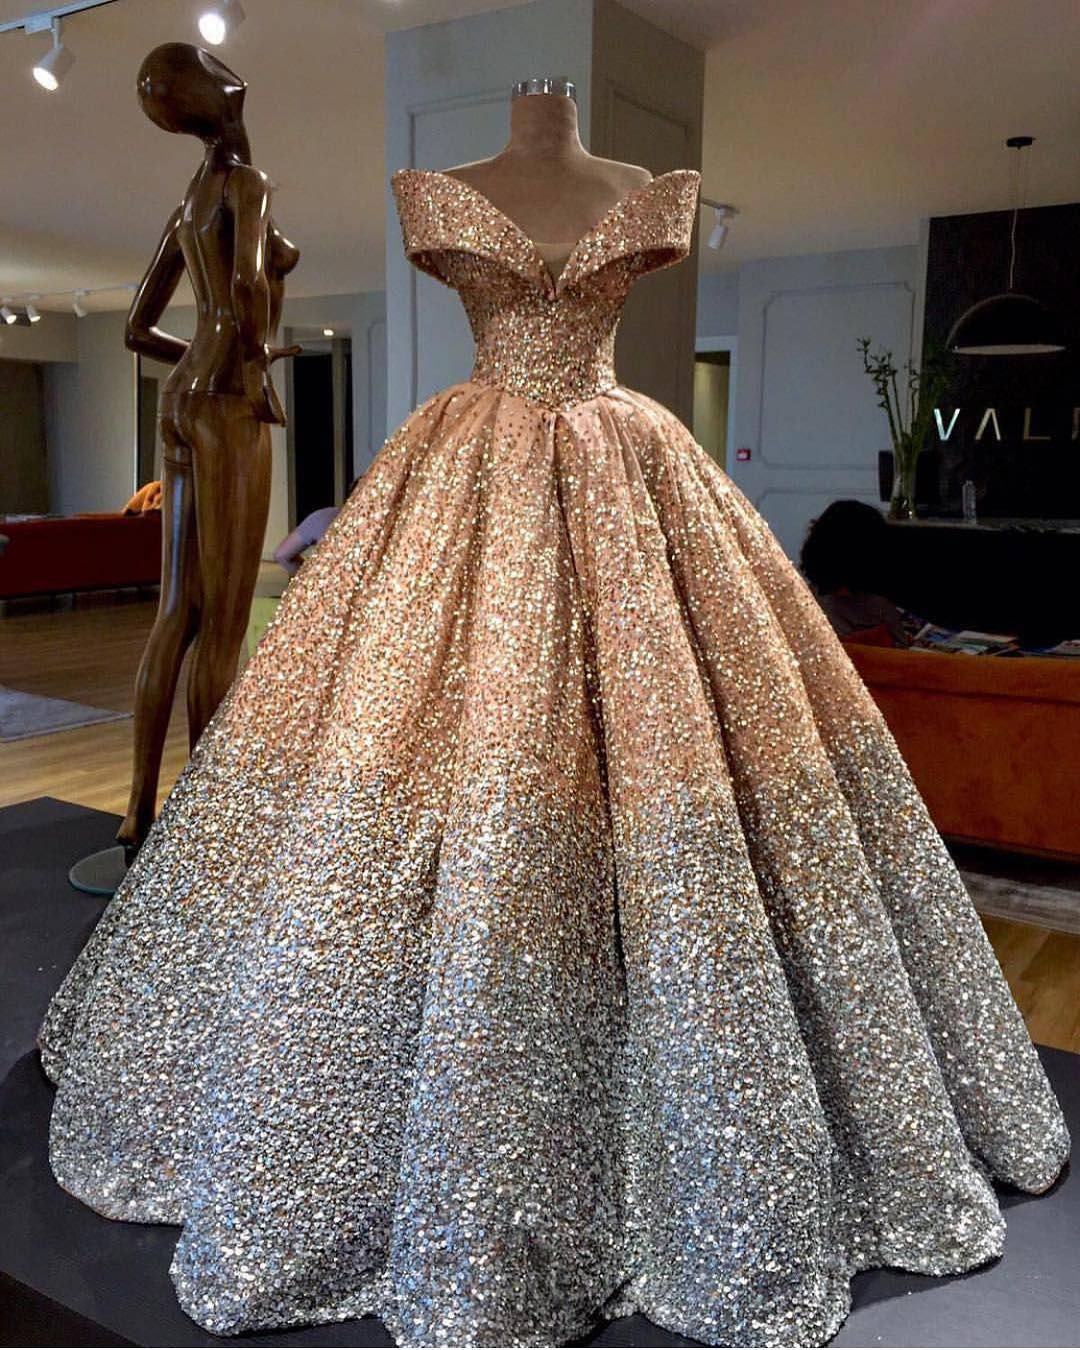 Custom Dresses Inspired By Haute Couture Designer Evening Fashion Strapless Evening Dress Gowns Ball Gowns Wedding